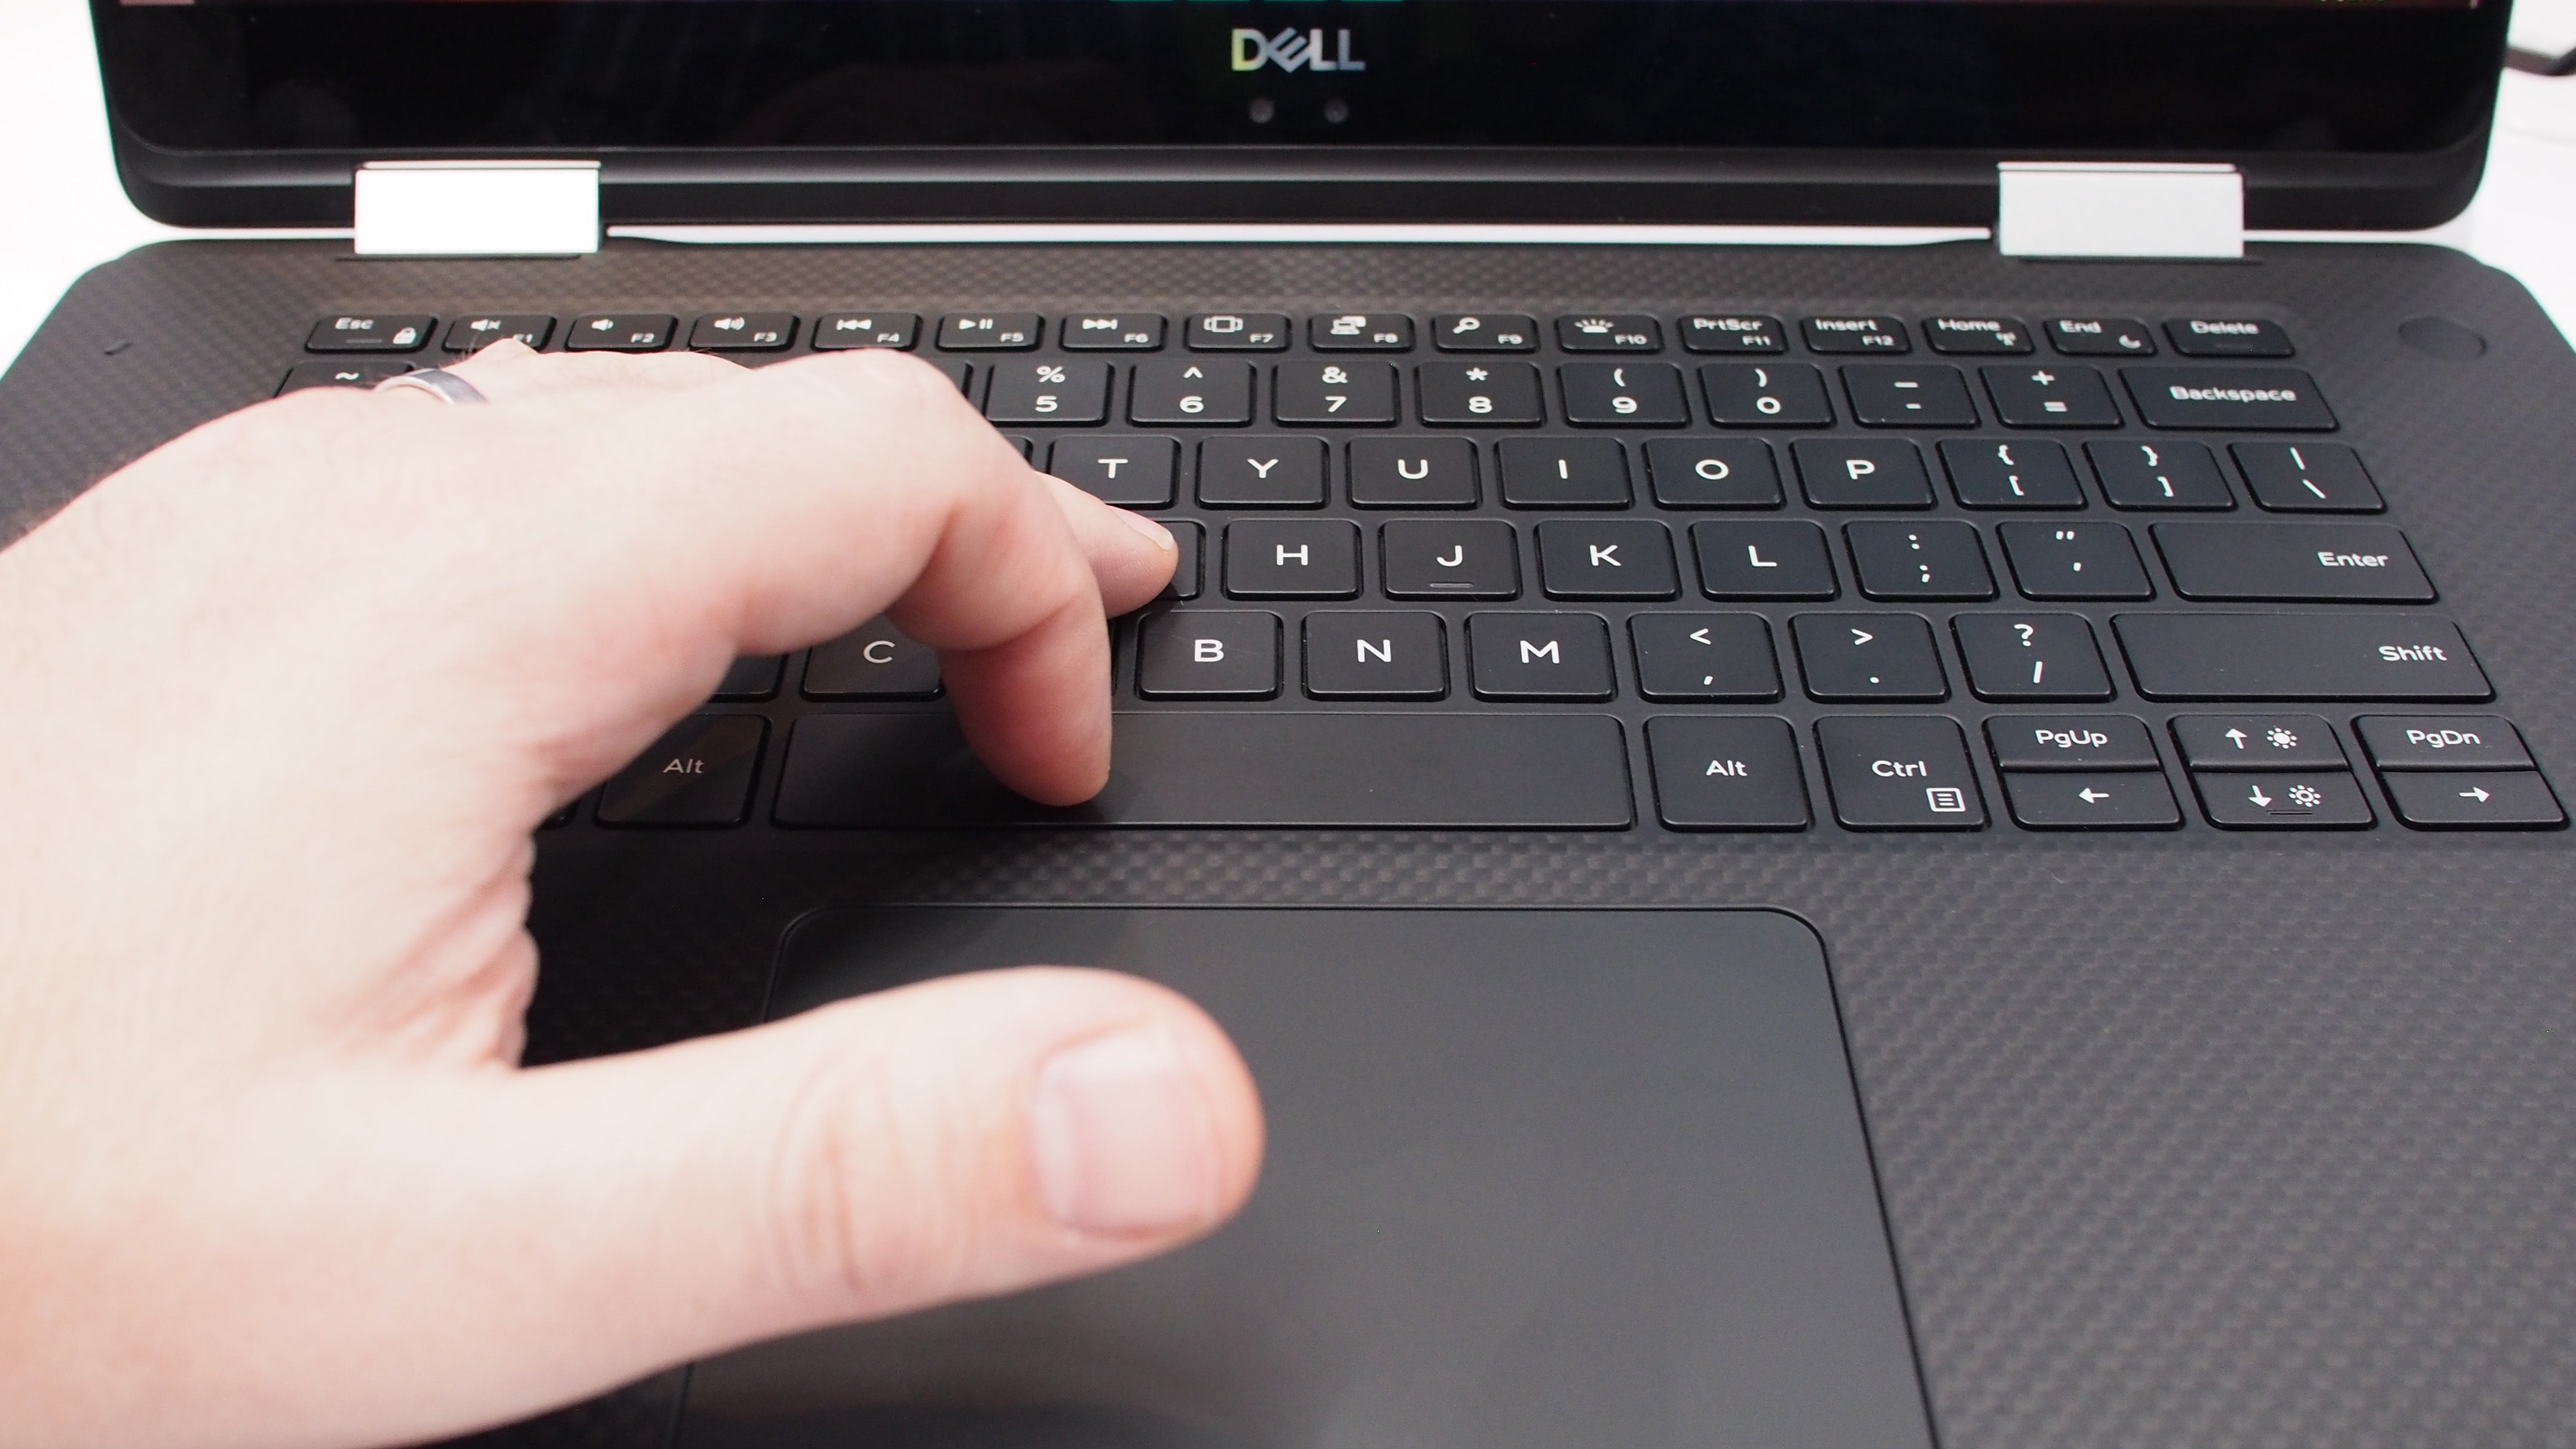 Dell XPS 15 2-in-1 maglev keyboard